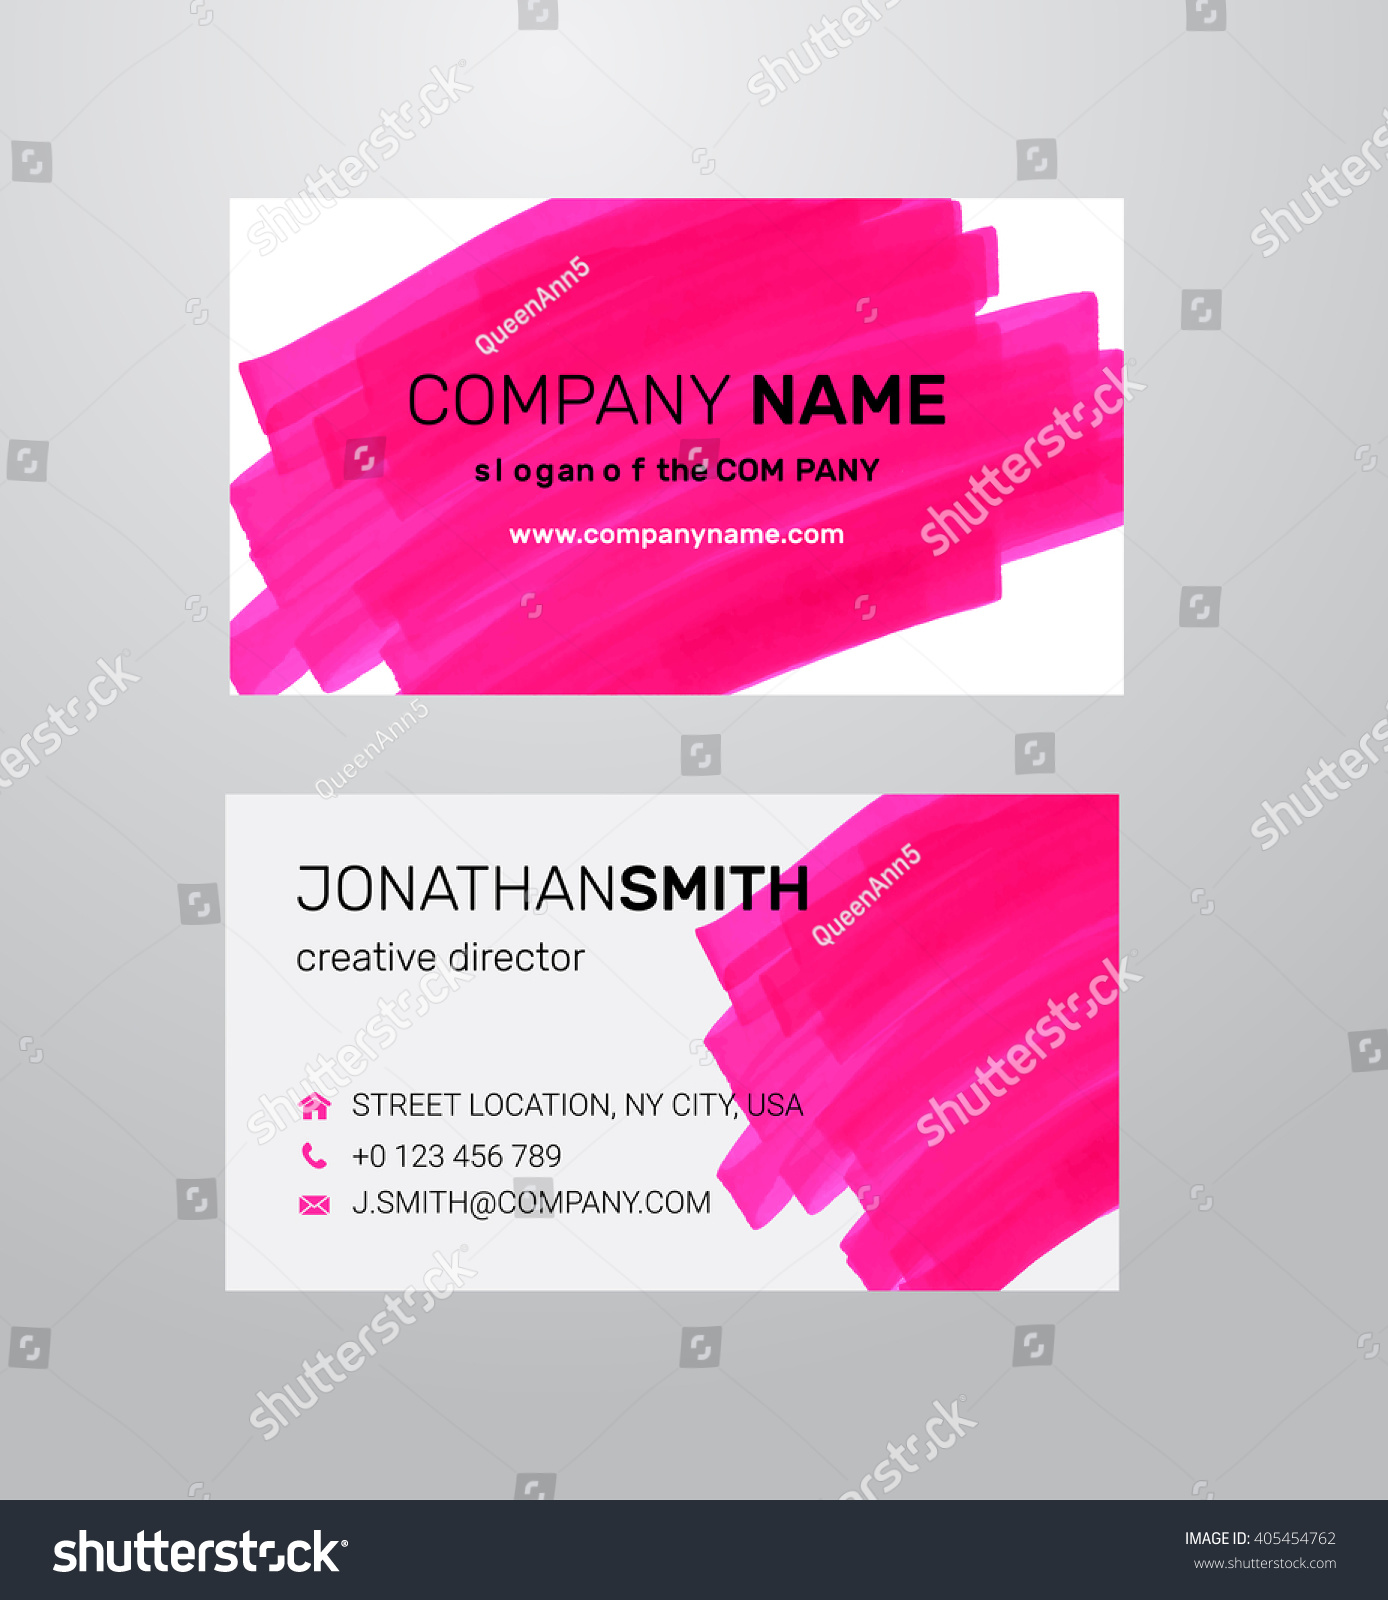 Painter Business Card Template Choice Image Templates Example